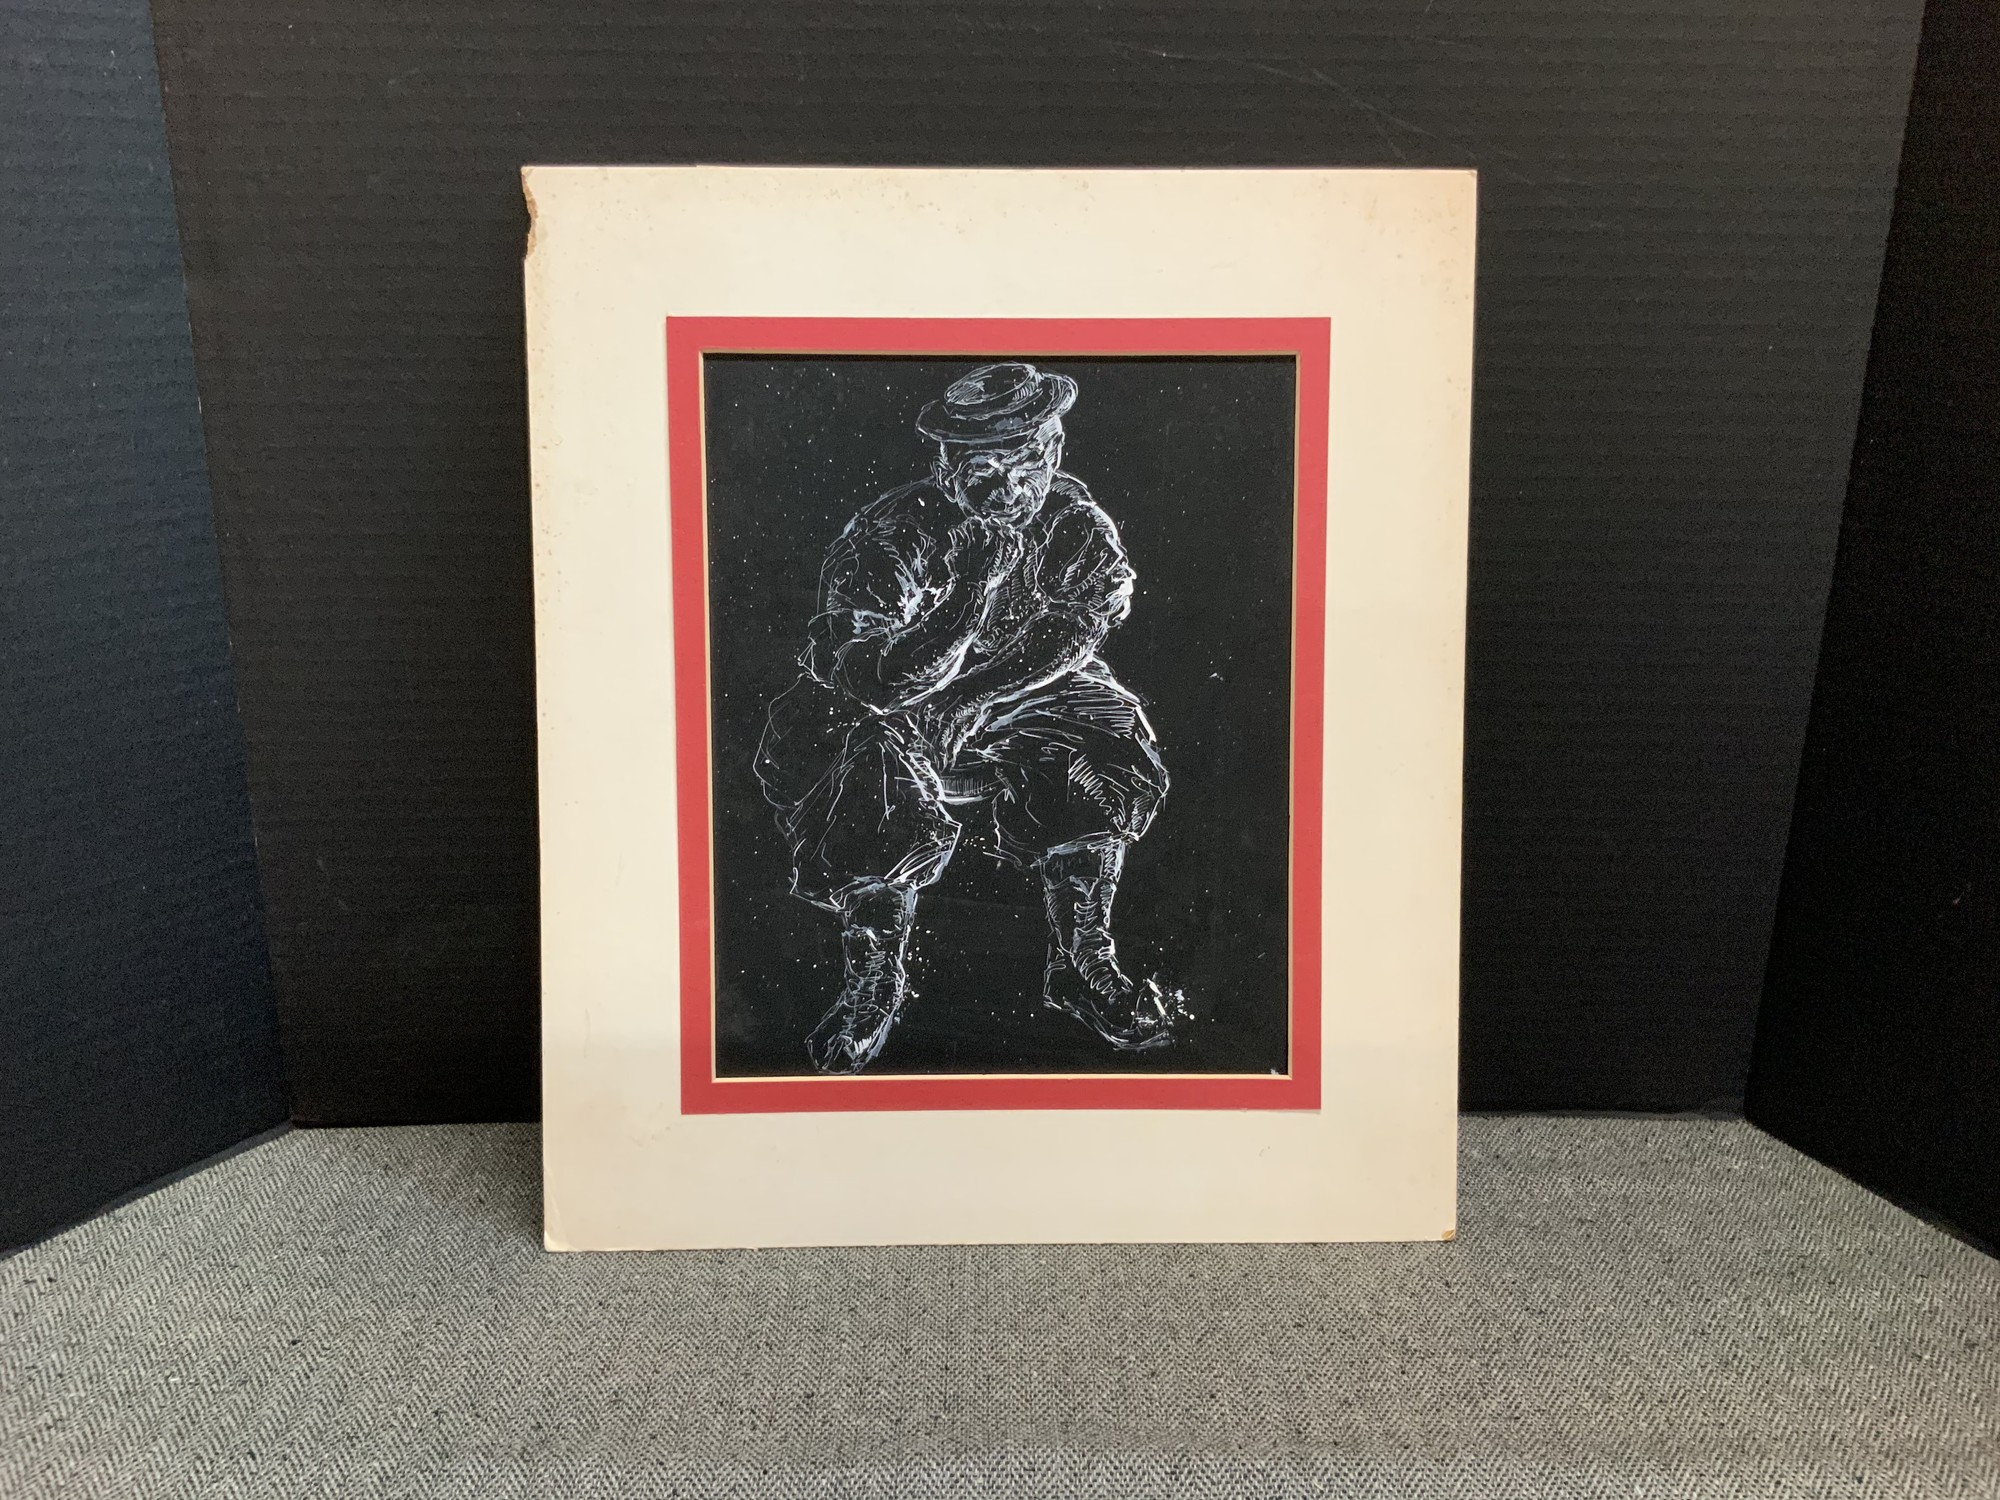 This piece comes with a period mat that measures 13x15.5 and has an opening of 8.5x10.5.